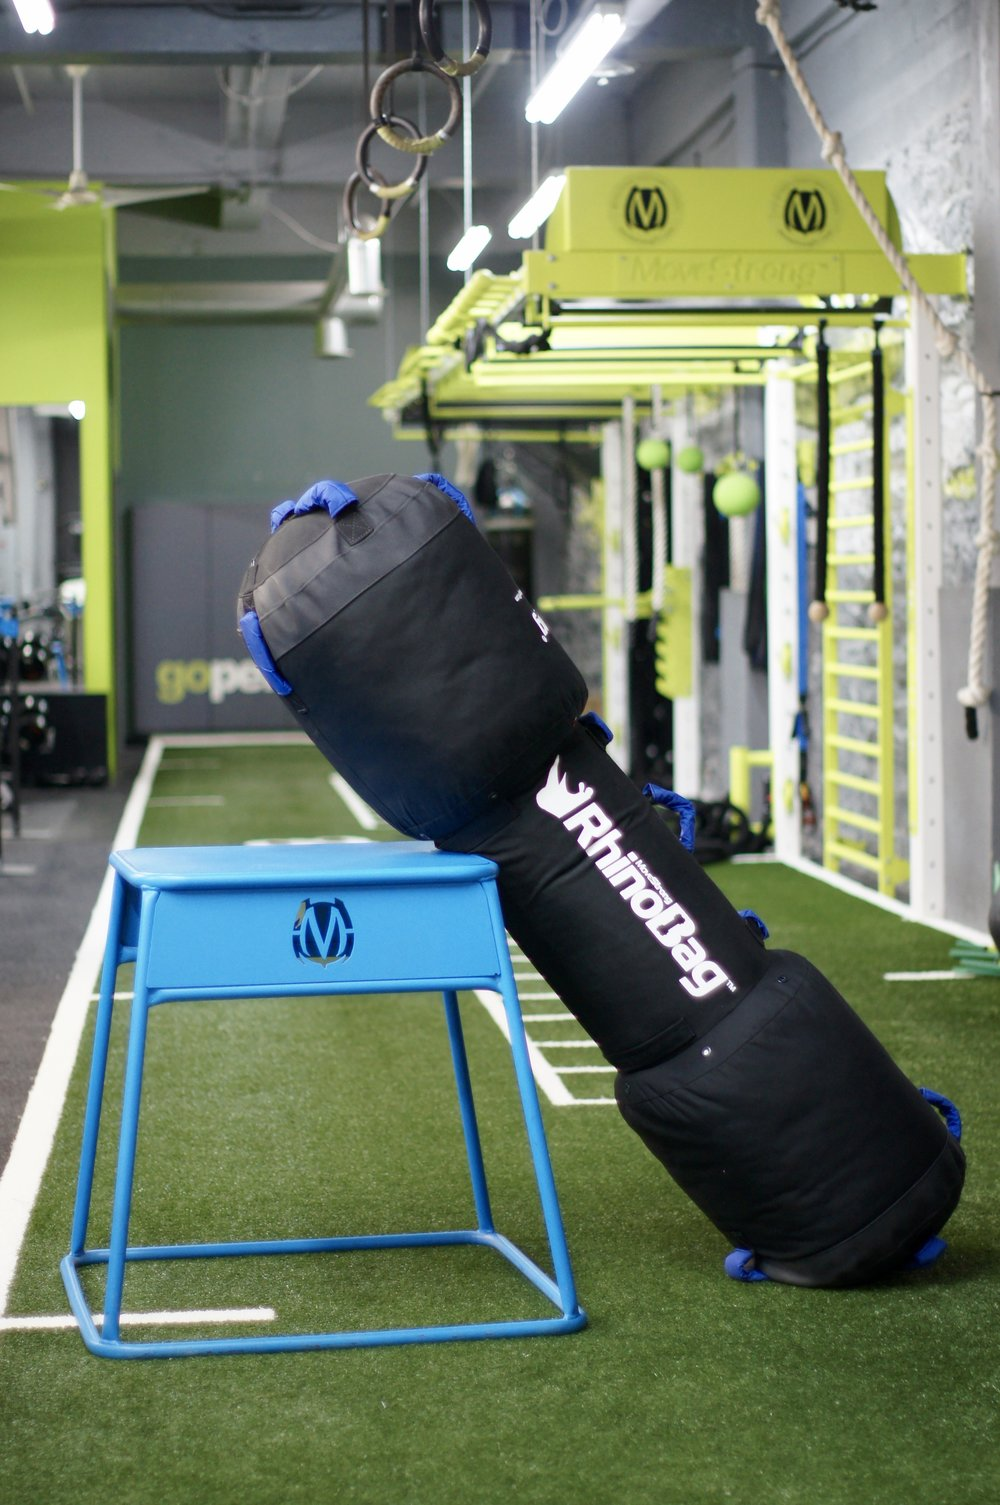 Durable and rugged strength training bag